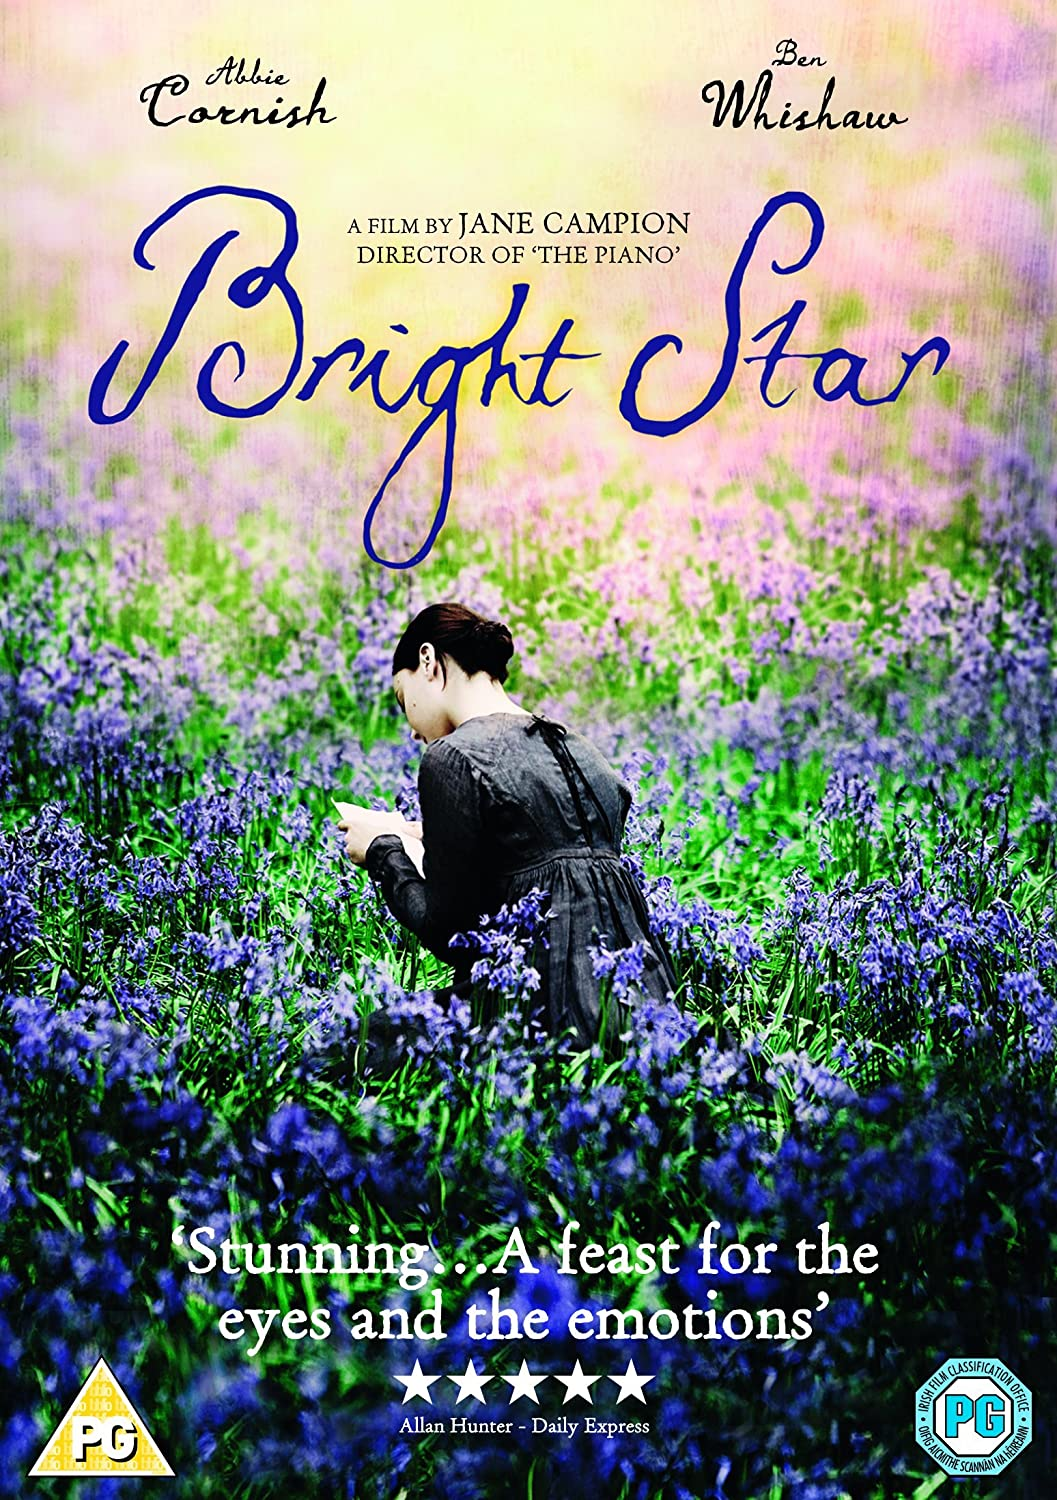 amazon com bright star import anglais ben whishaw abbie cornish kerry fox jane campion movies tv